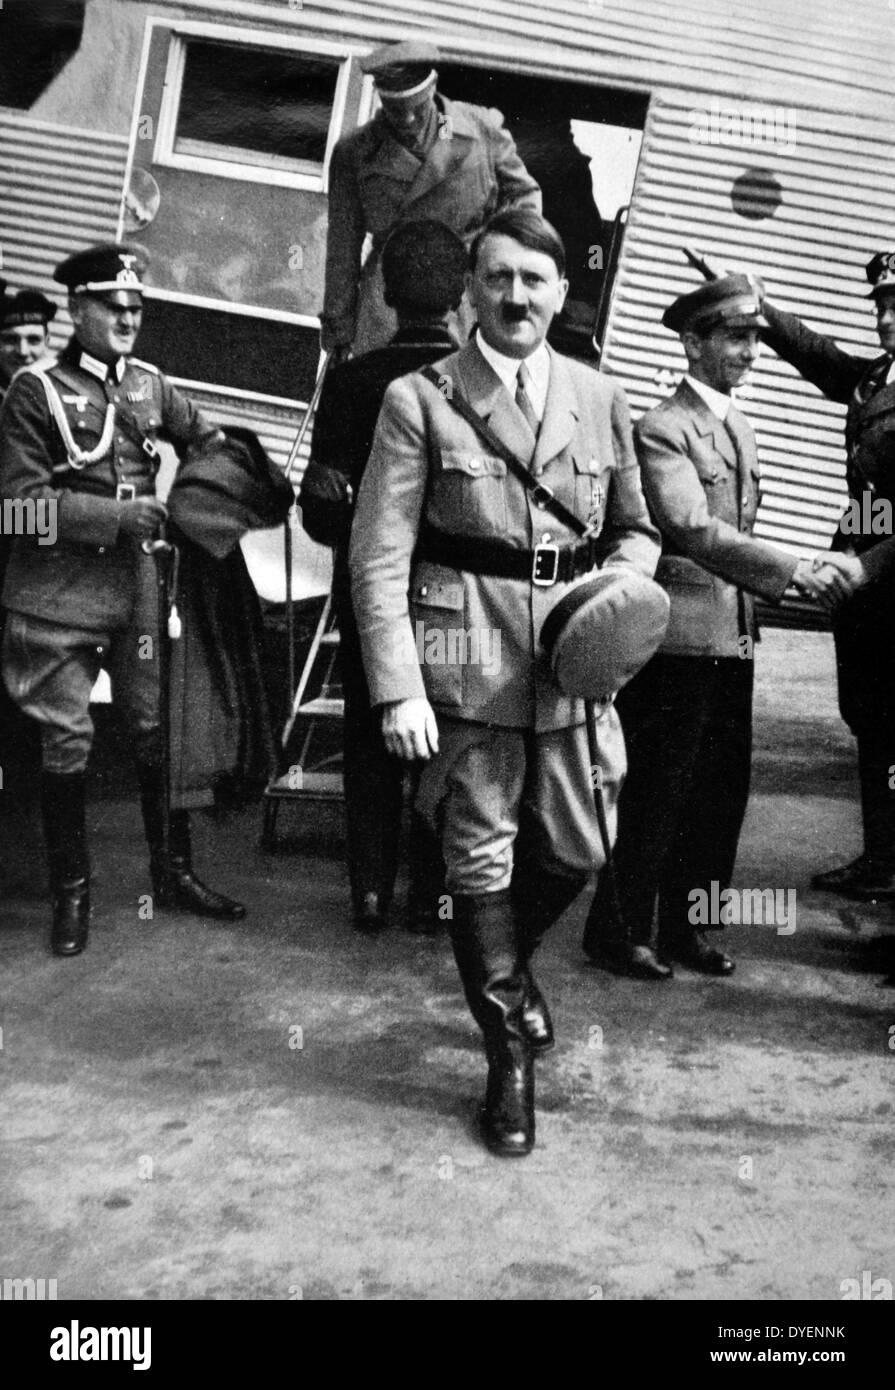 Adolf Hitler arriving at an airfield in Germany accompanied by Dr Josef Goebbels - Stock Image